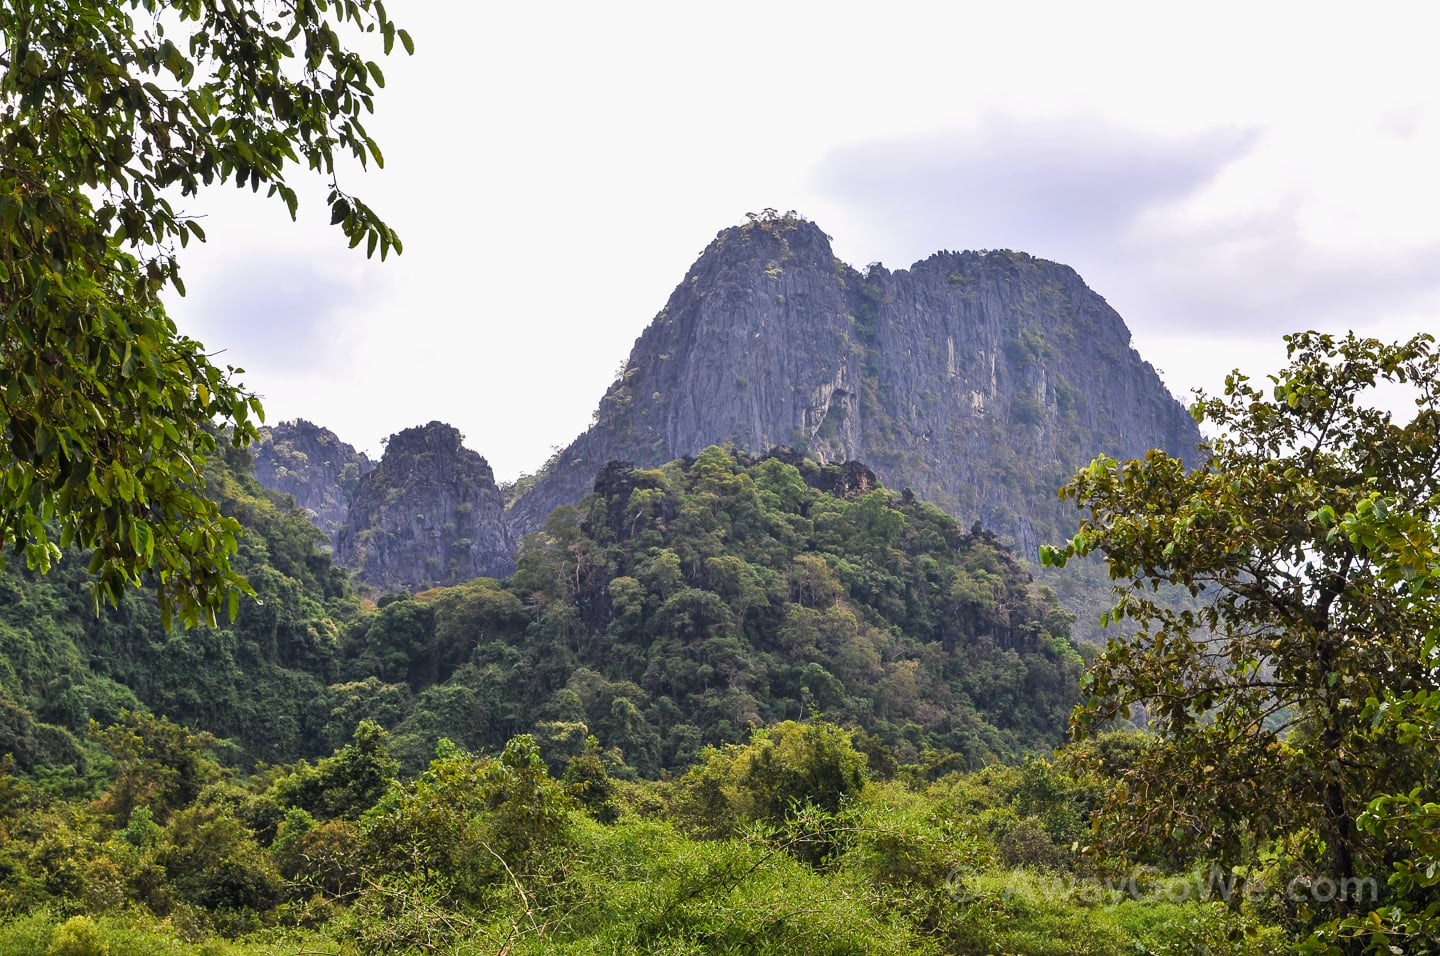 karst peeks surrounded by jungle near buddha cave in laos